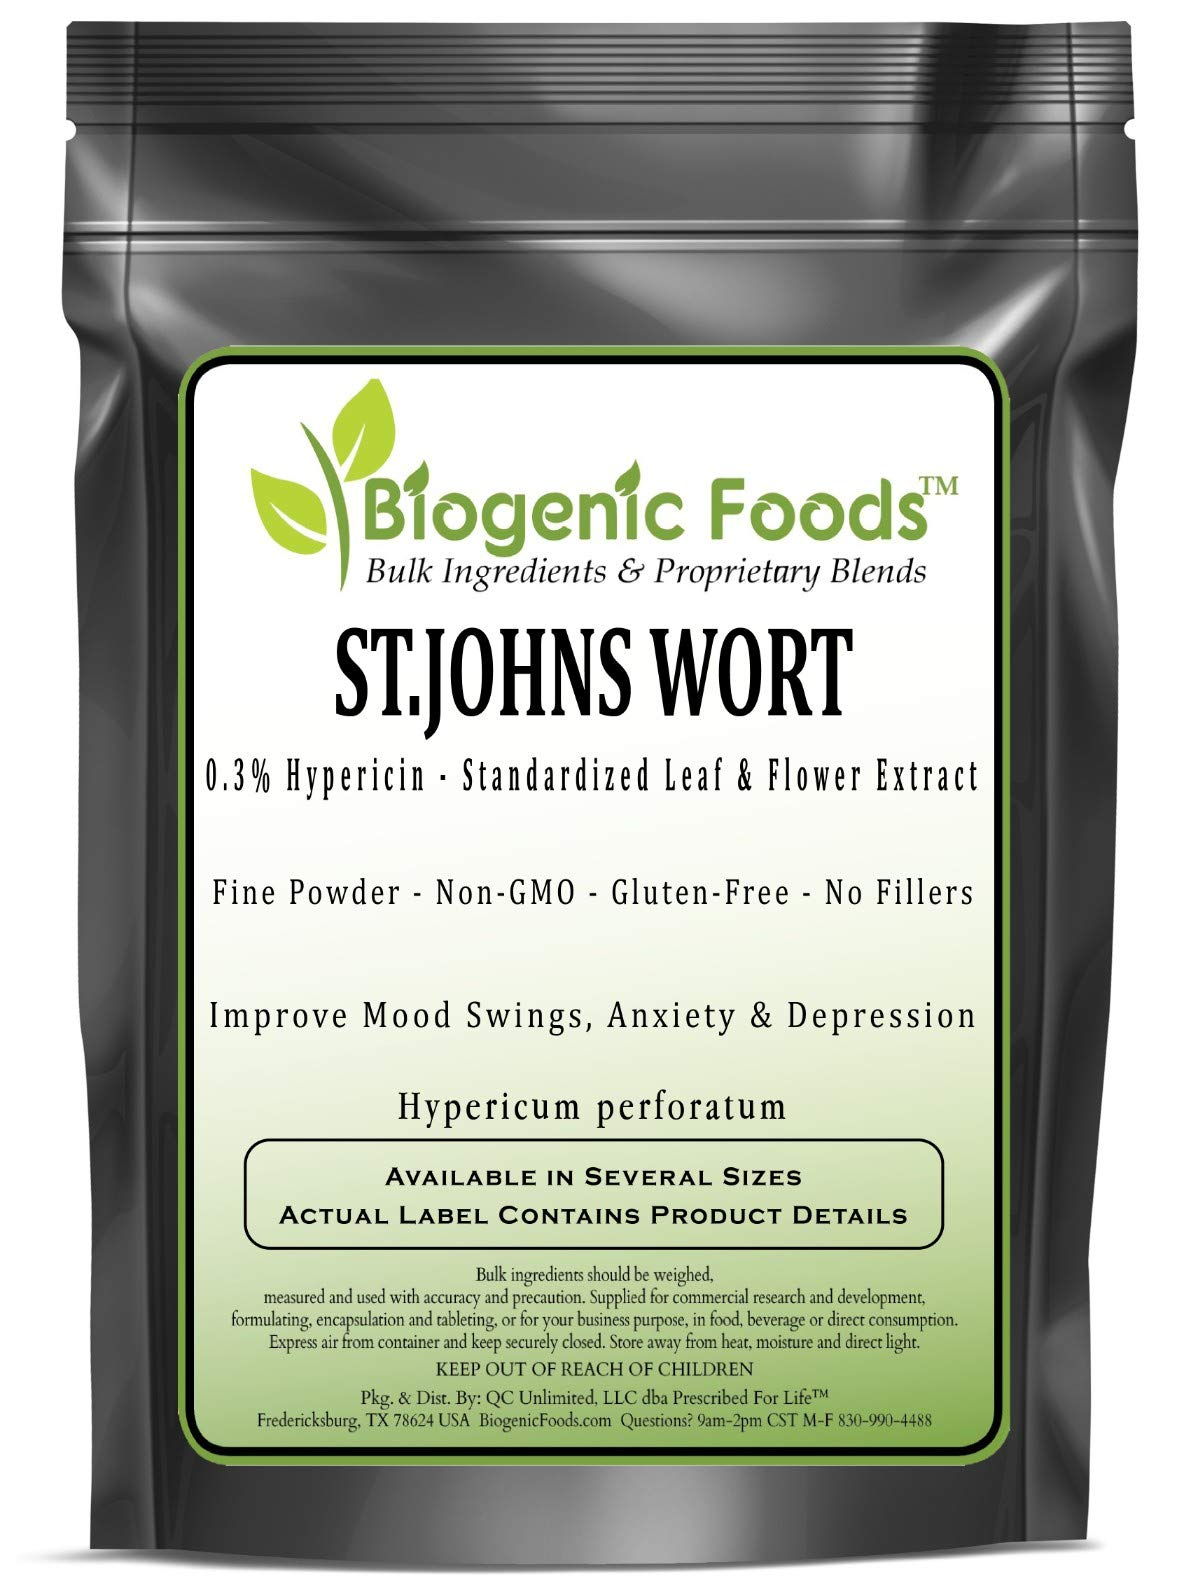 St.Johns Wort - 0.3% Hypericin - Standardized Leaf & Flower Fine Powder Extract (Hypericum perforatum), 1 kg